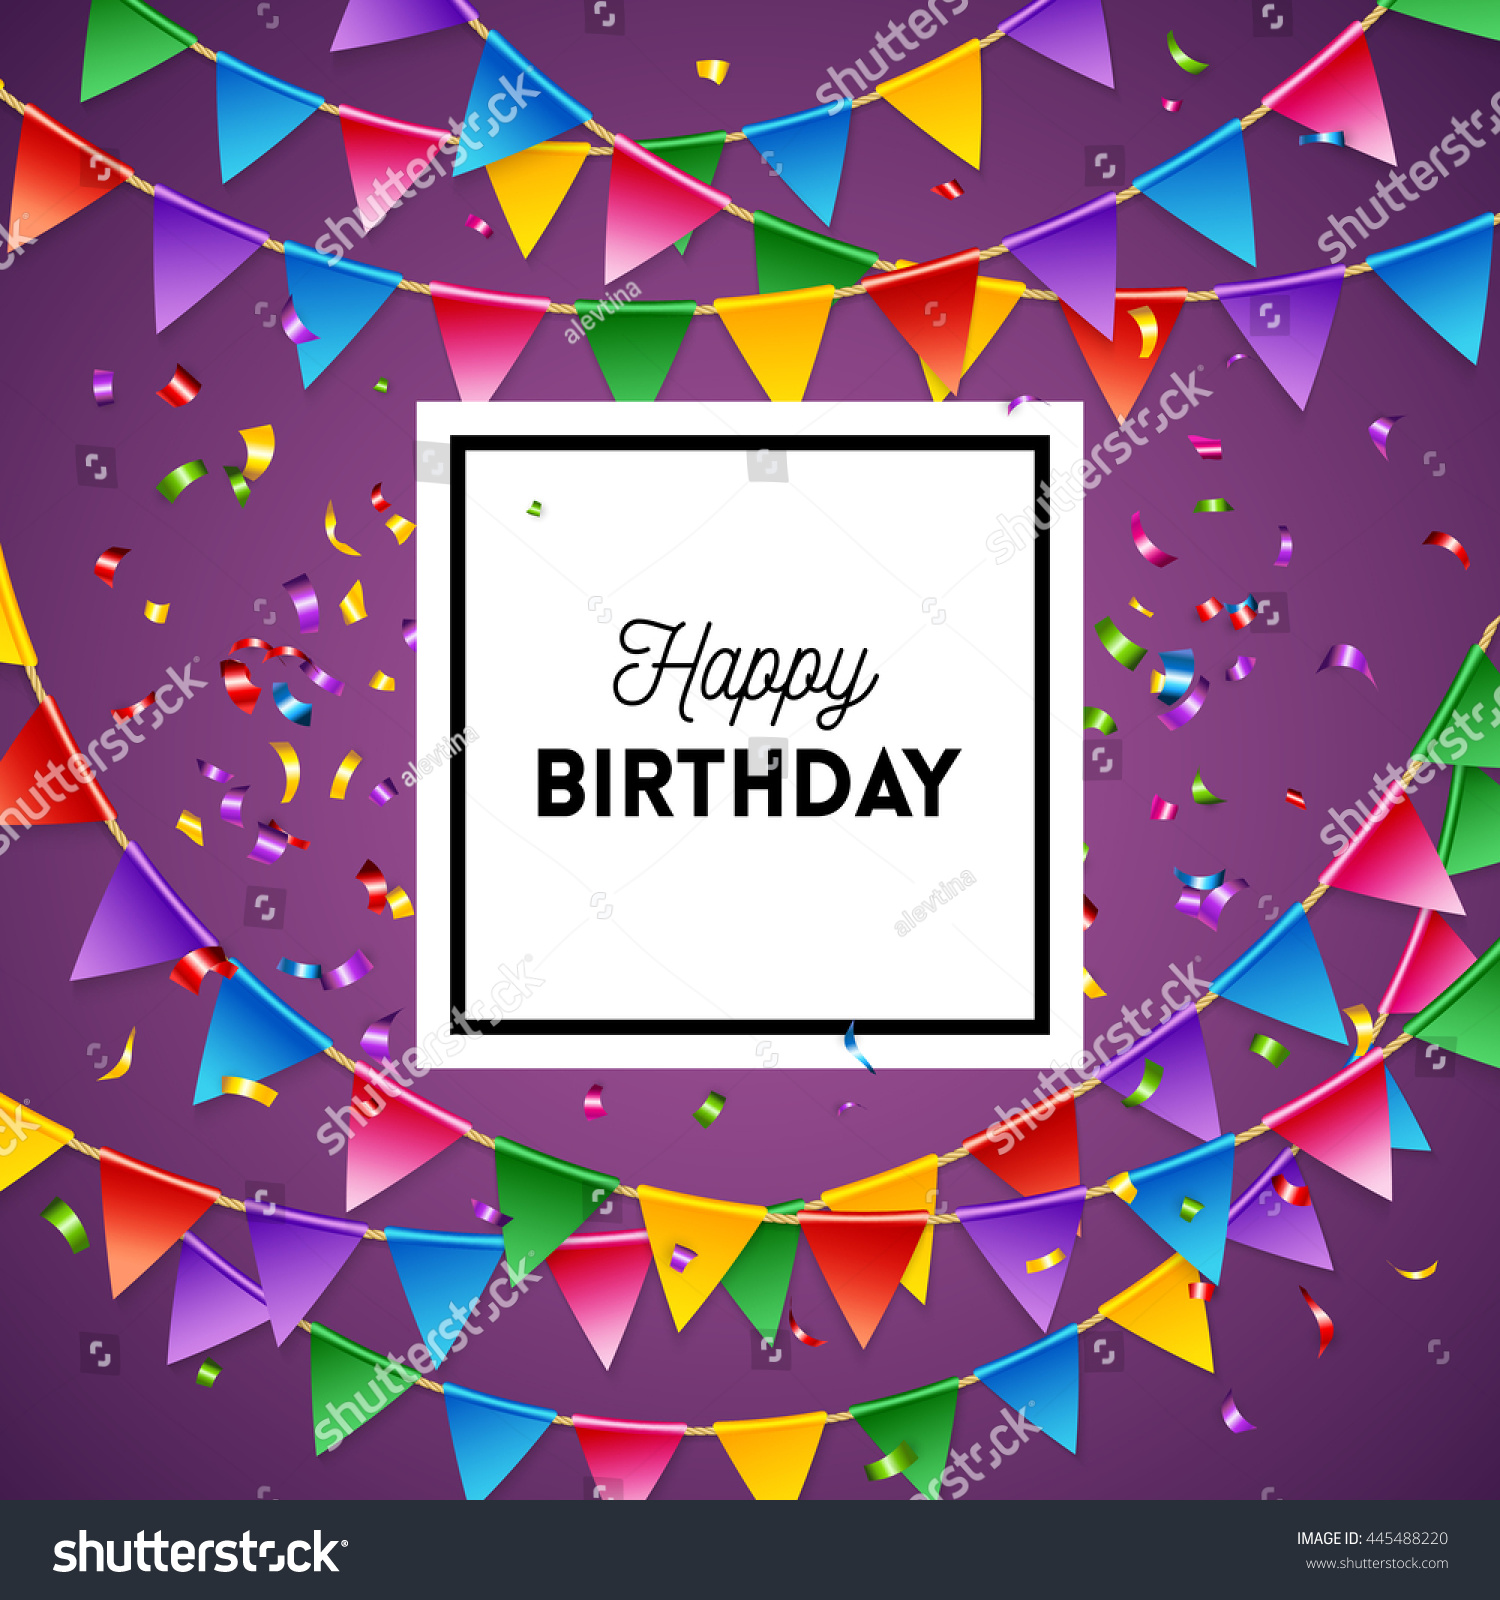 Happy Birthday Greeting Card Background Design Stock Vector Royalty